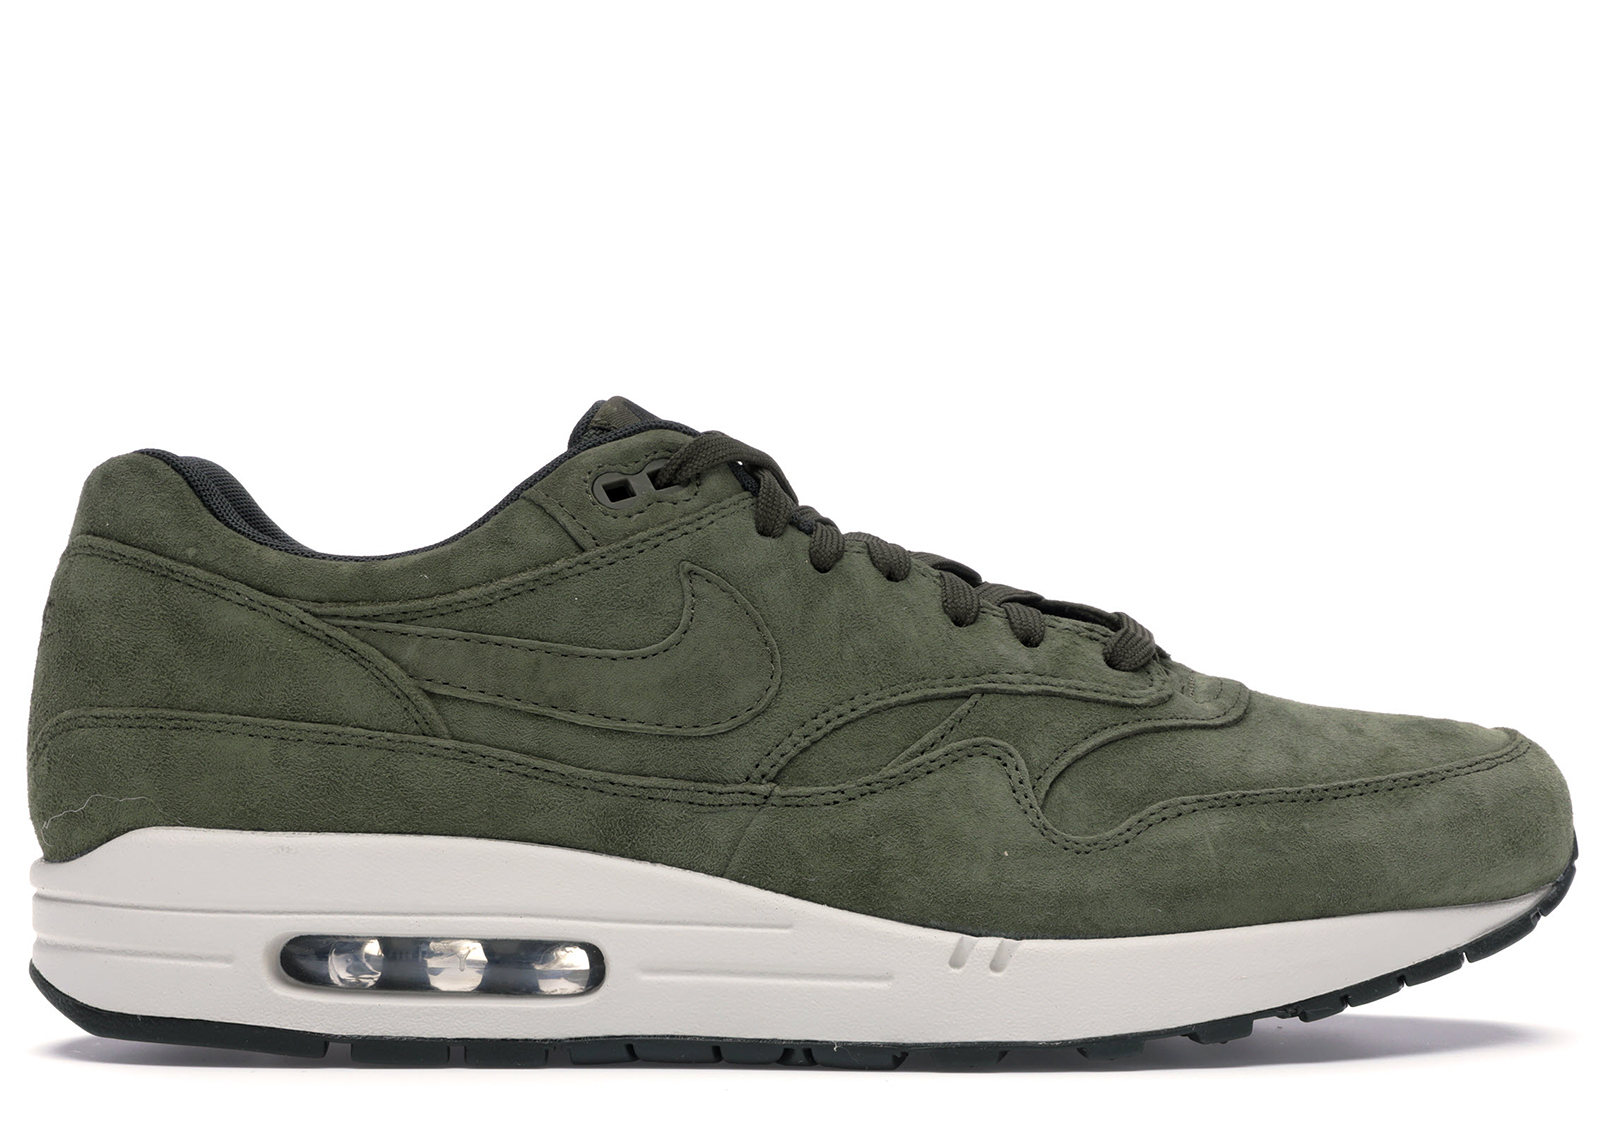 Nike Air Max 1 Olive Canvas Suede - 875844-301